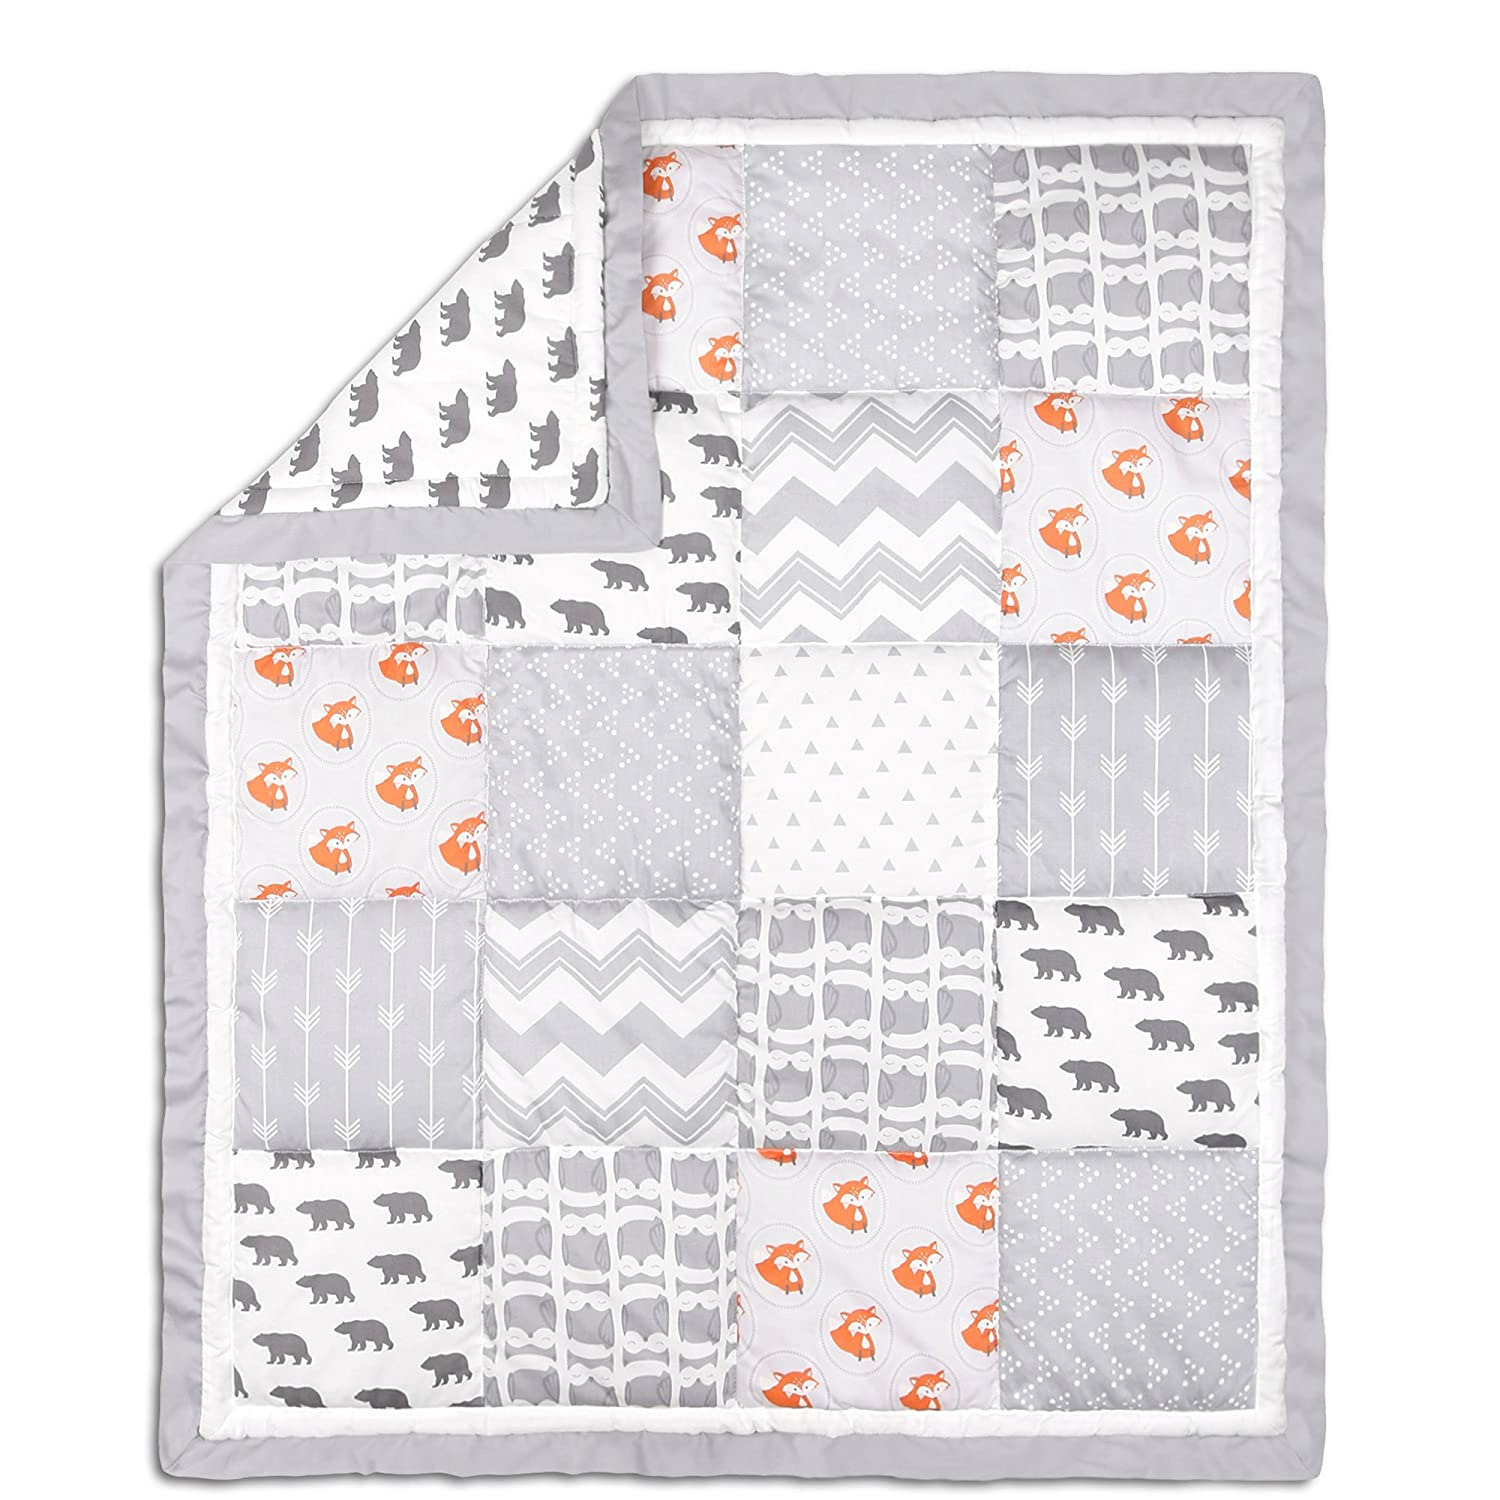 Grey and Orange Woodland Friends Patchwork Crib Quilt by The Peanut Shell Farallon Brands QPBRGY